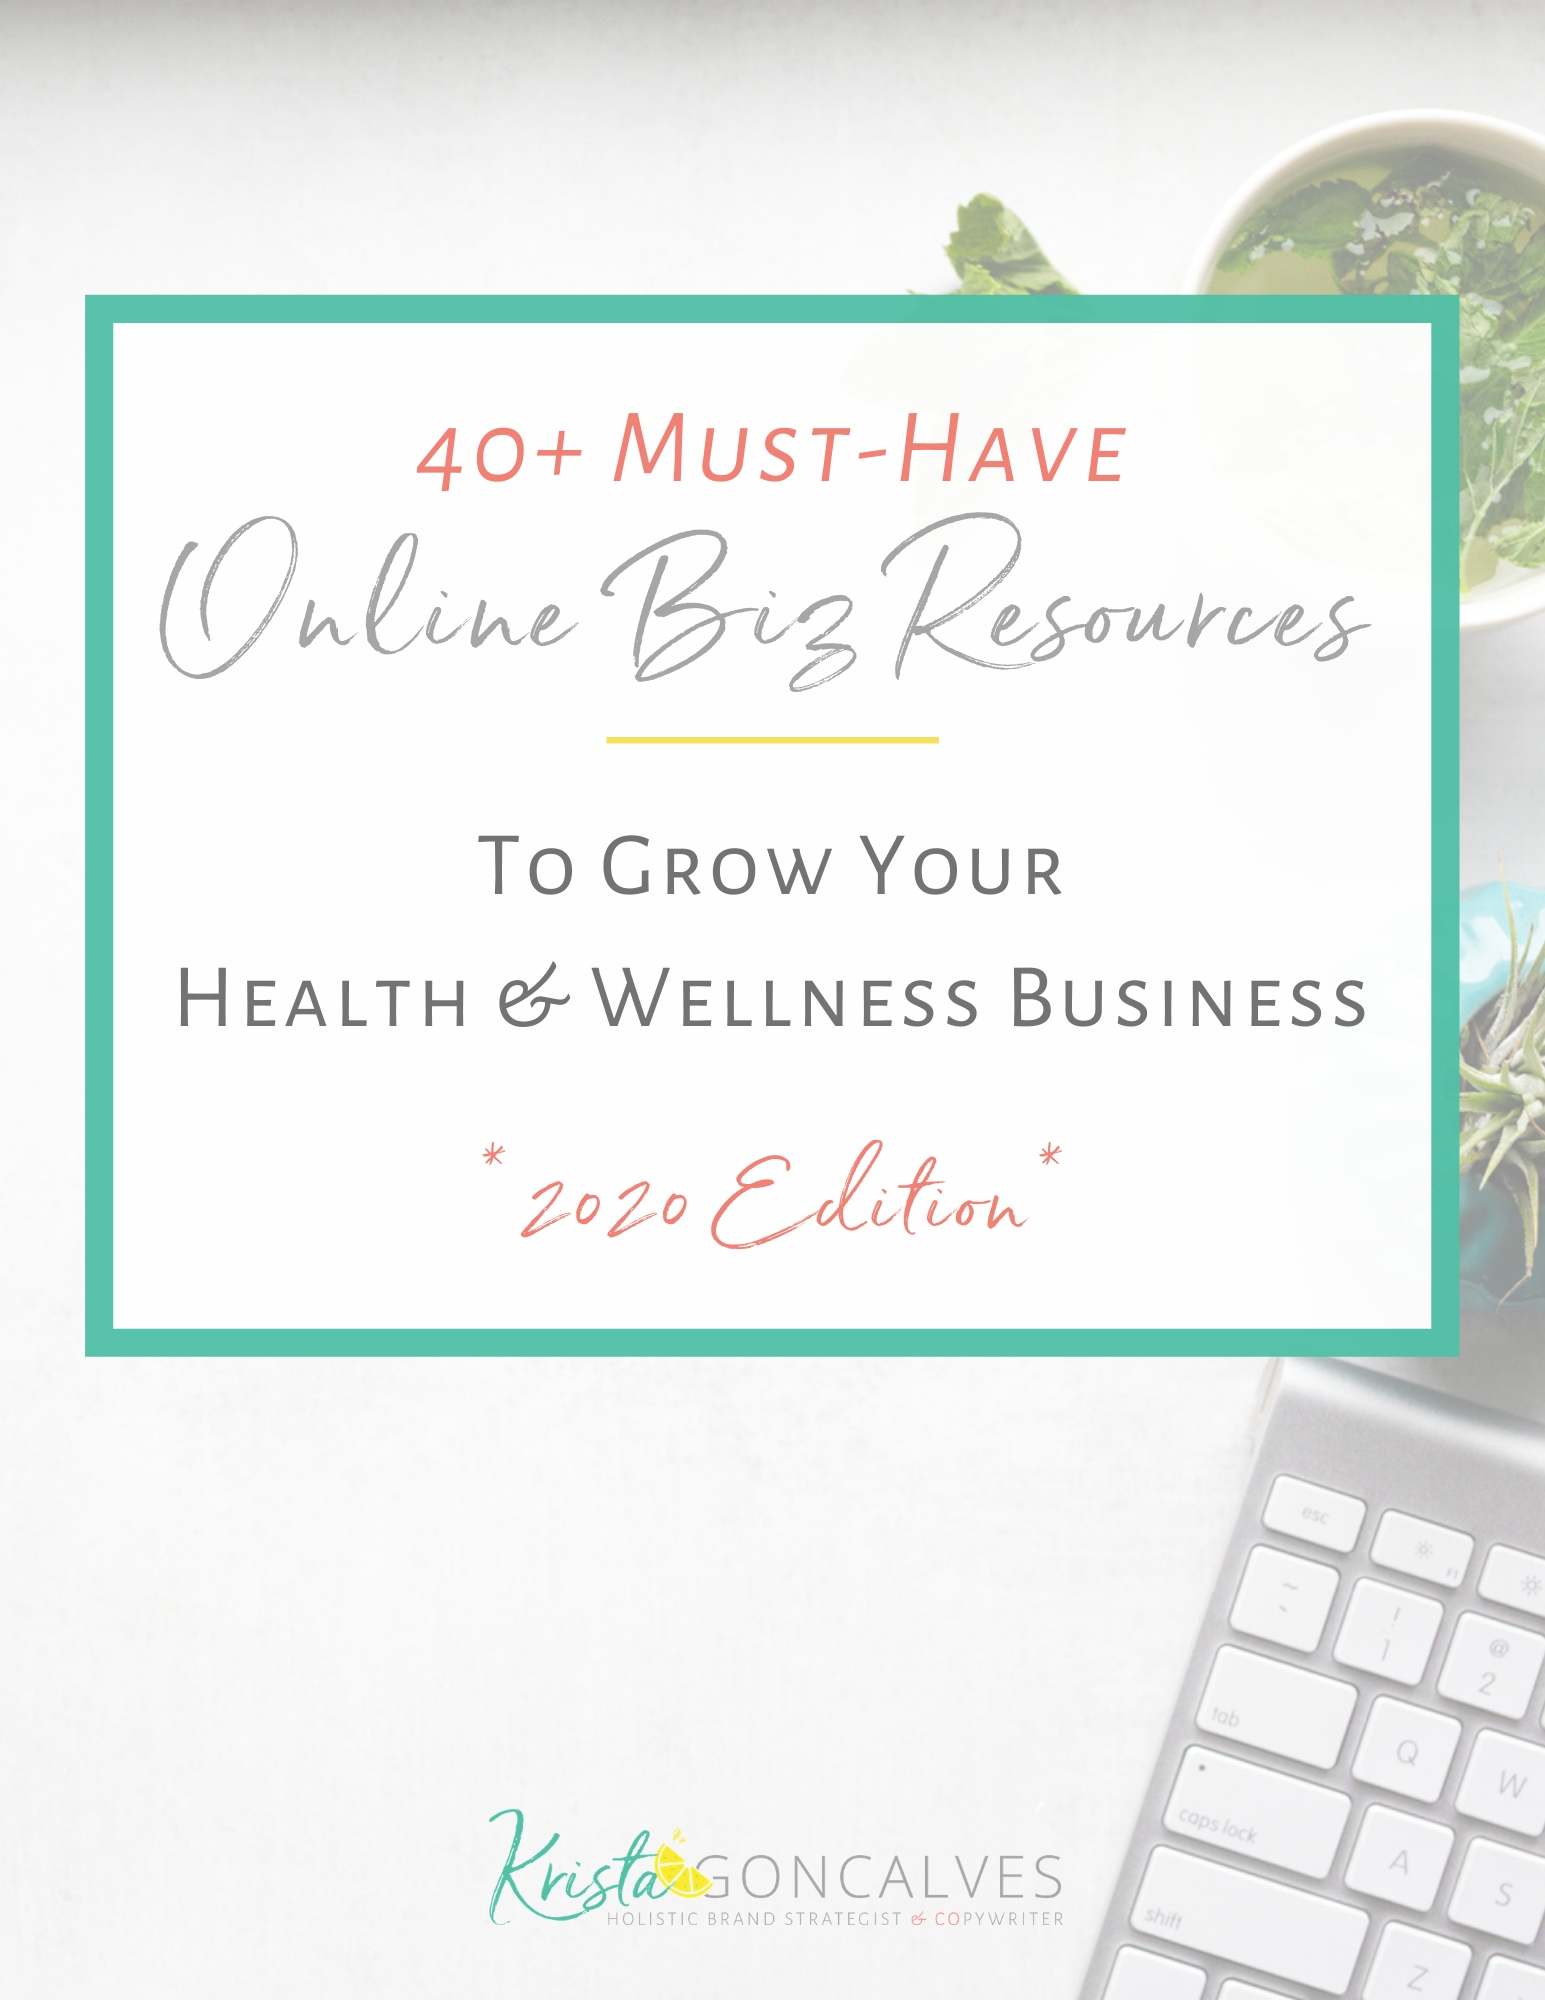 Online Business Resources for Health Pros & Wellness Entrepreneurs | 2020 Edition | Krista Goncalves Co.